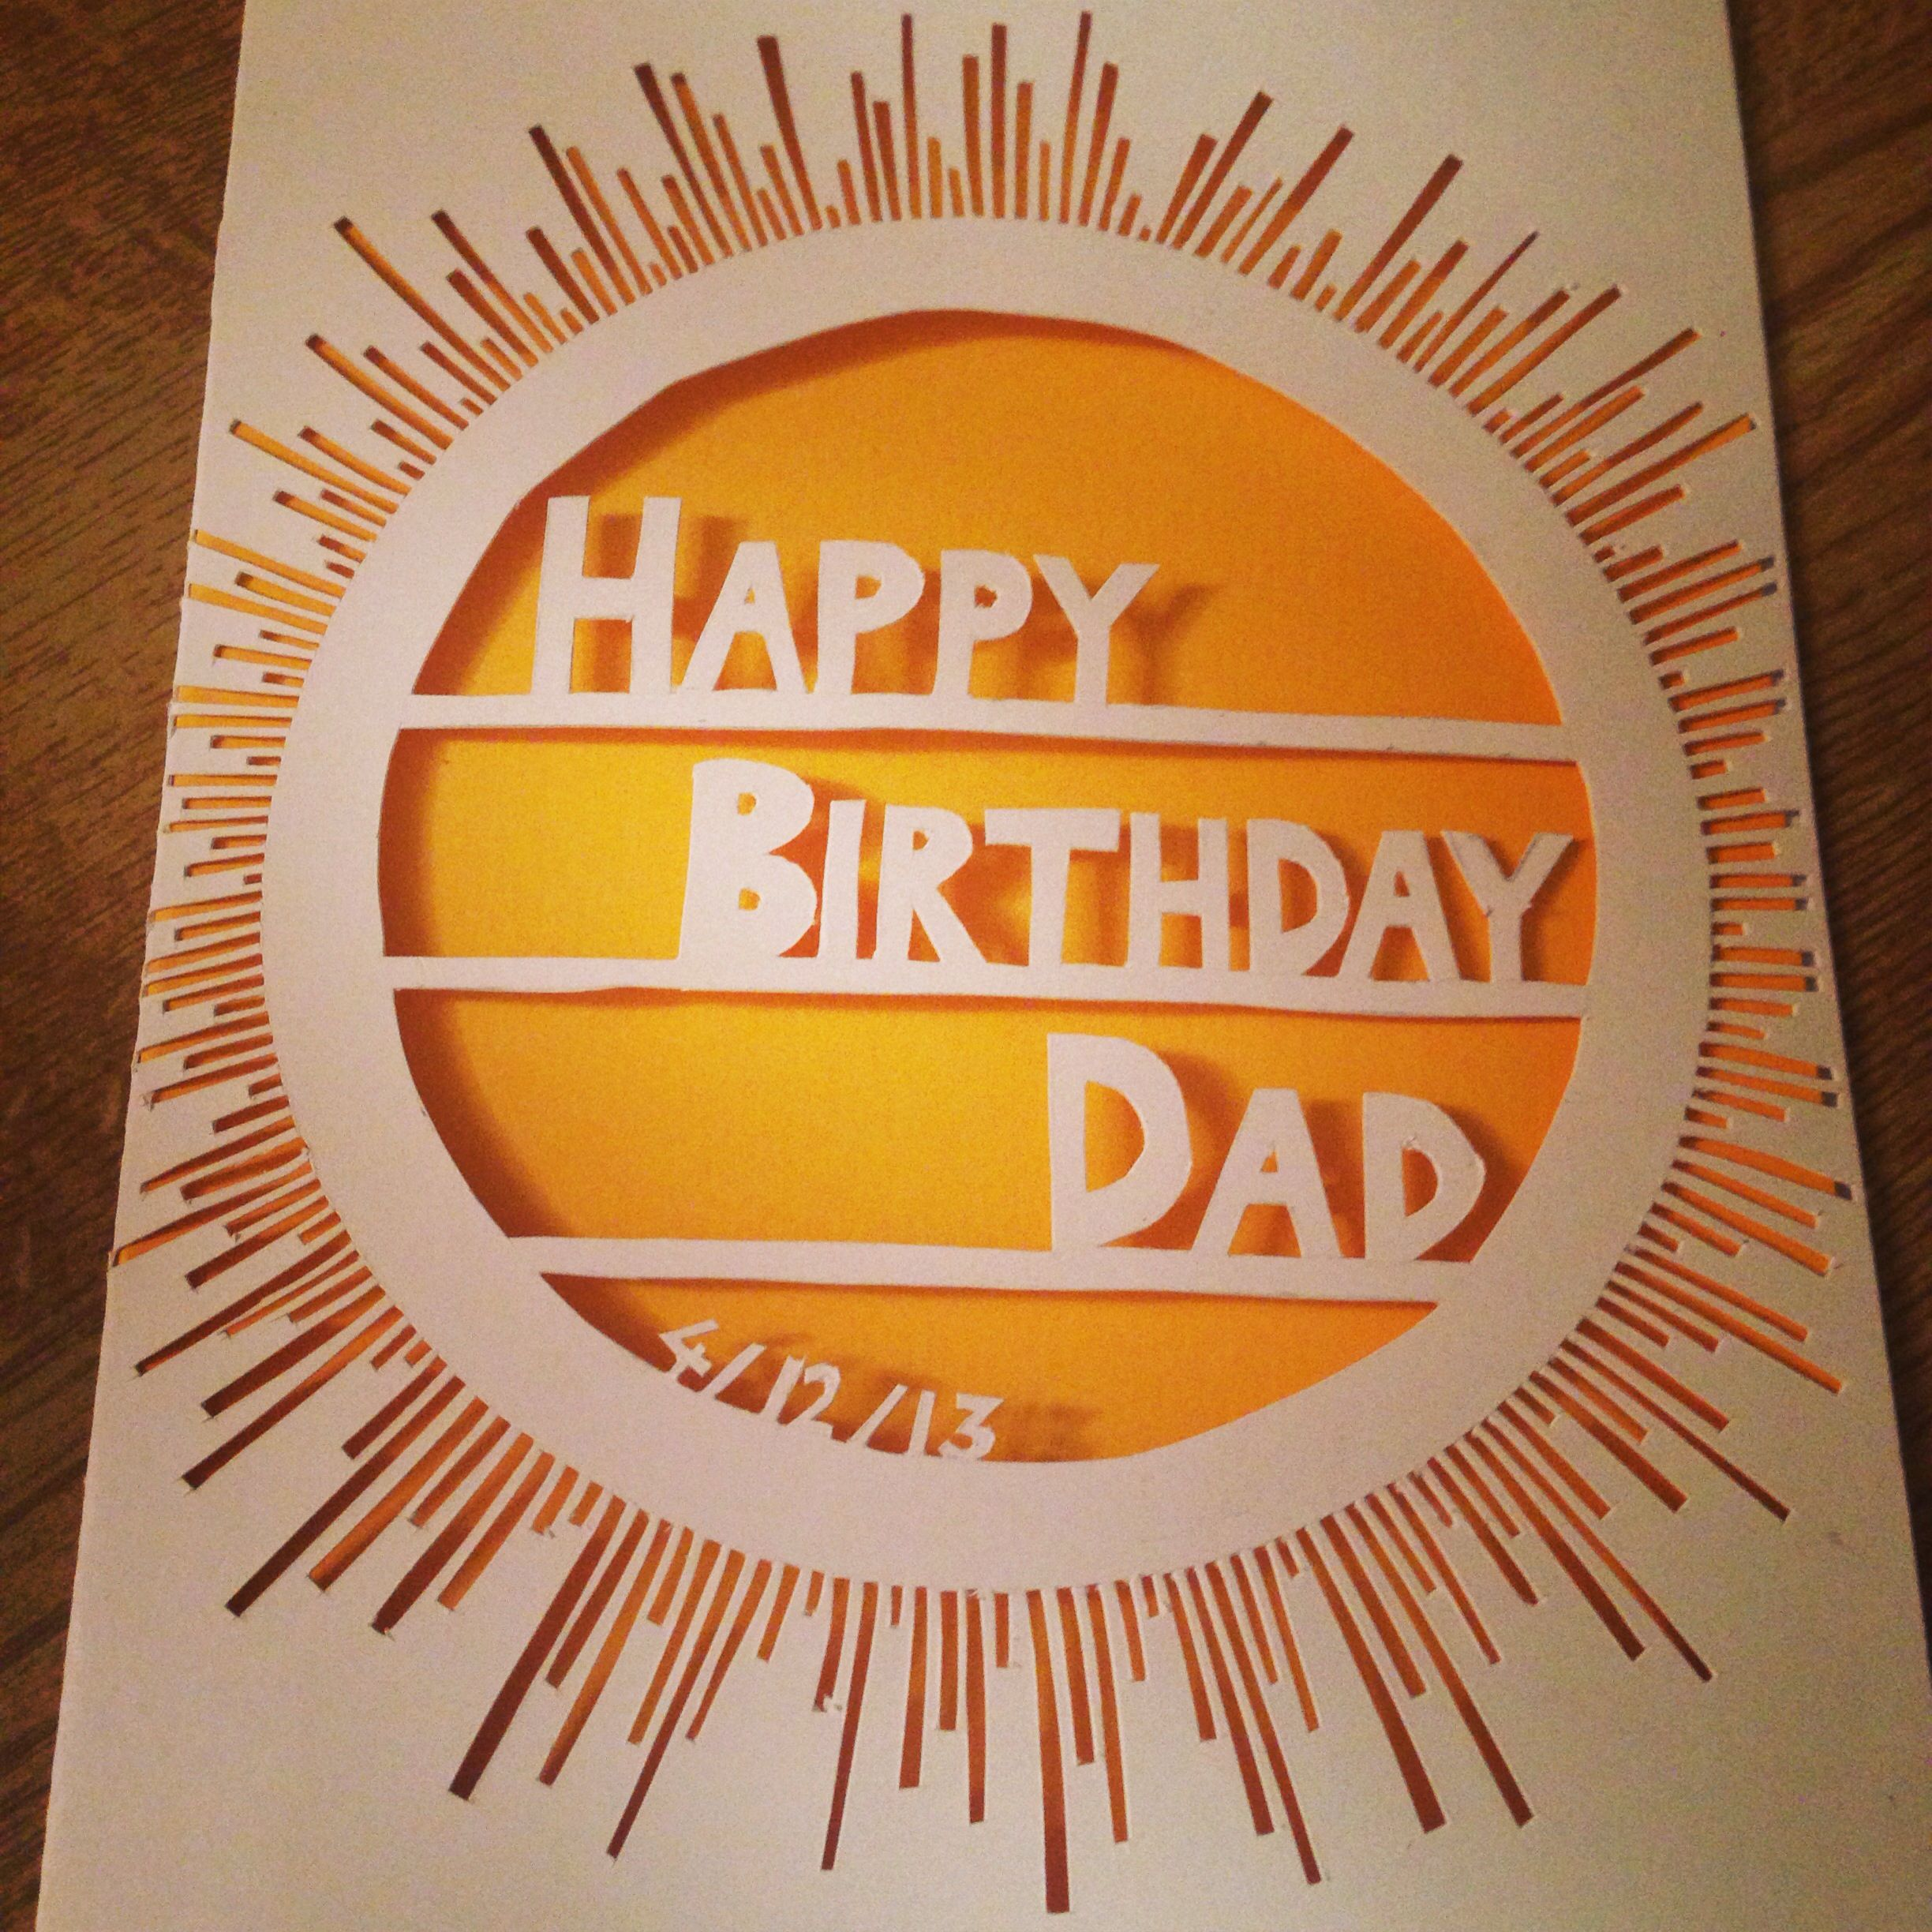 Dads birthday card cards pinterest dad birthday cards dads dads birthday card kristyandbryce Image collections